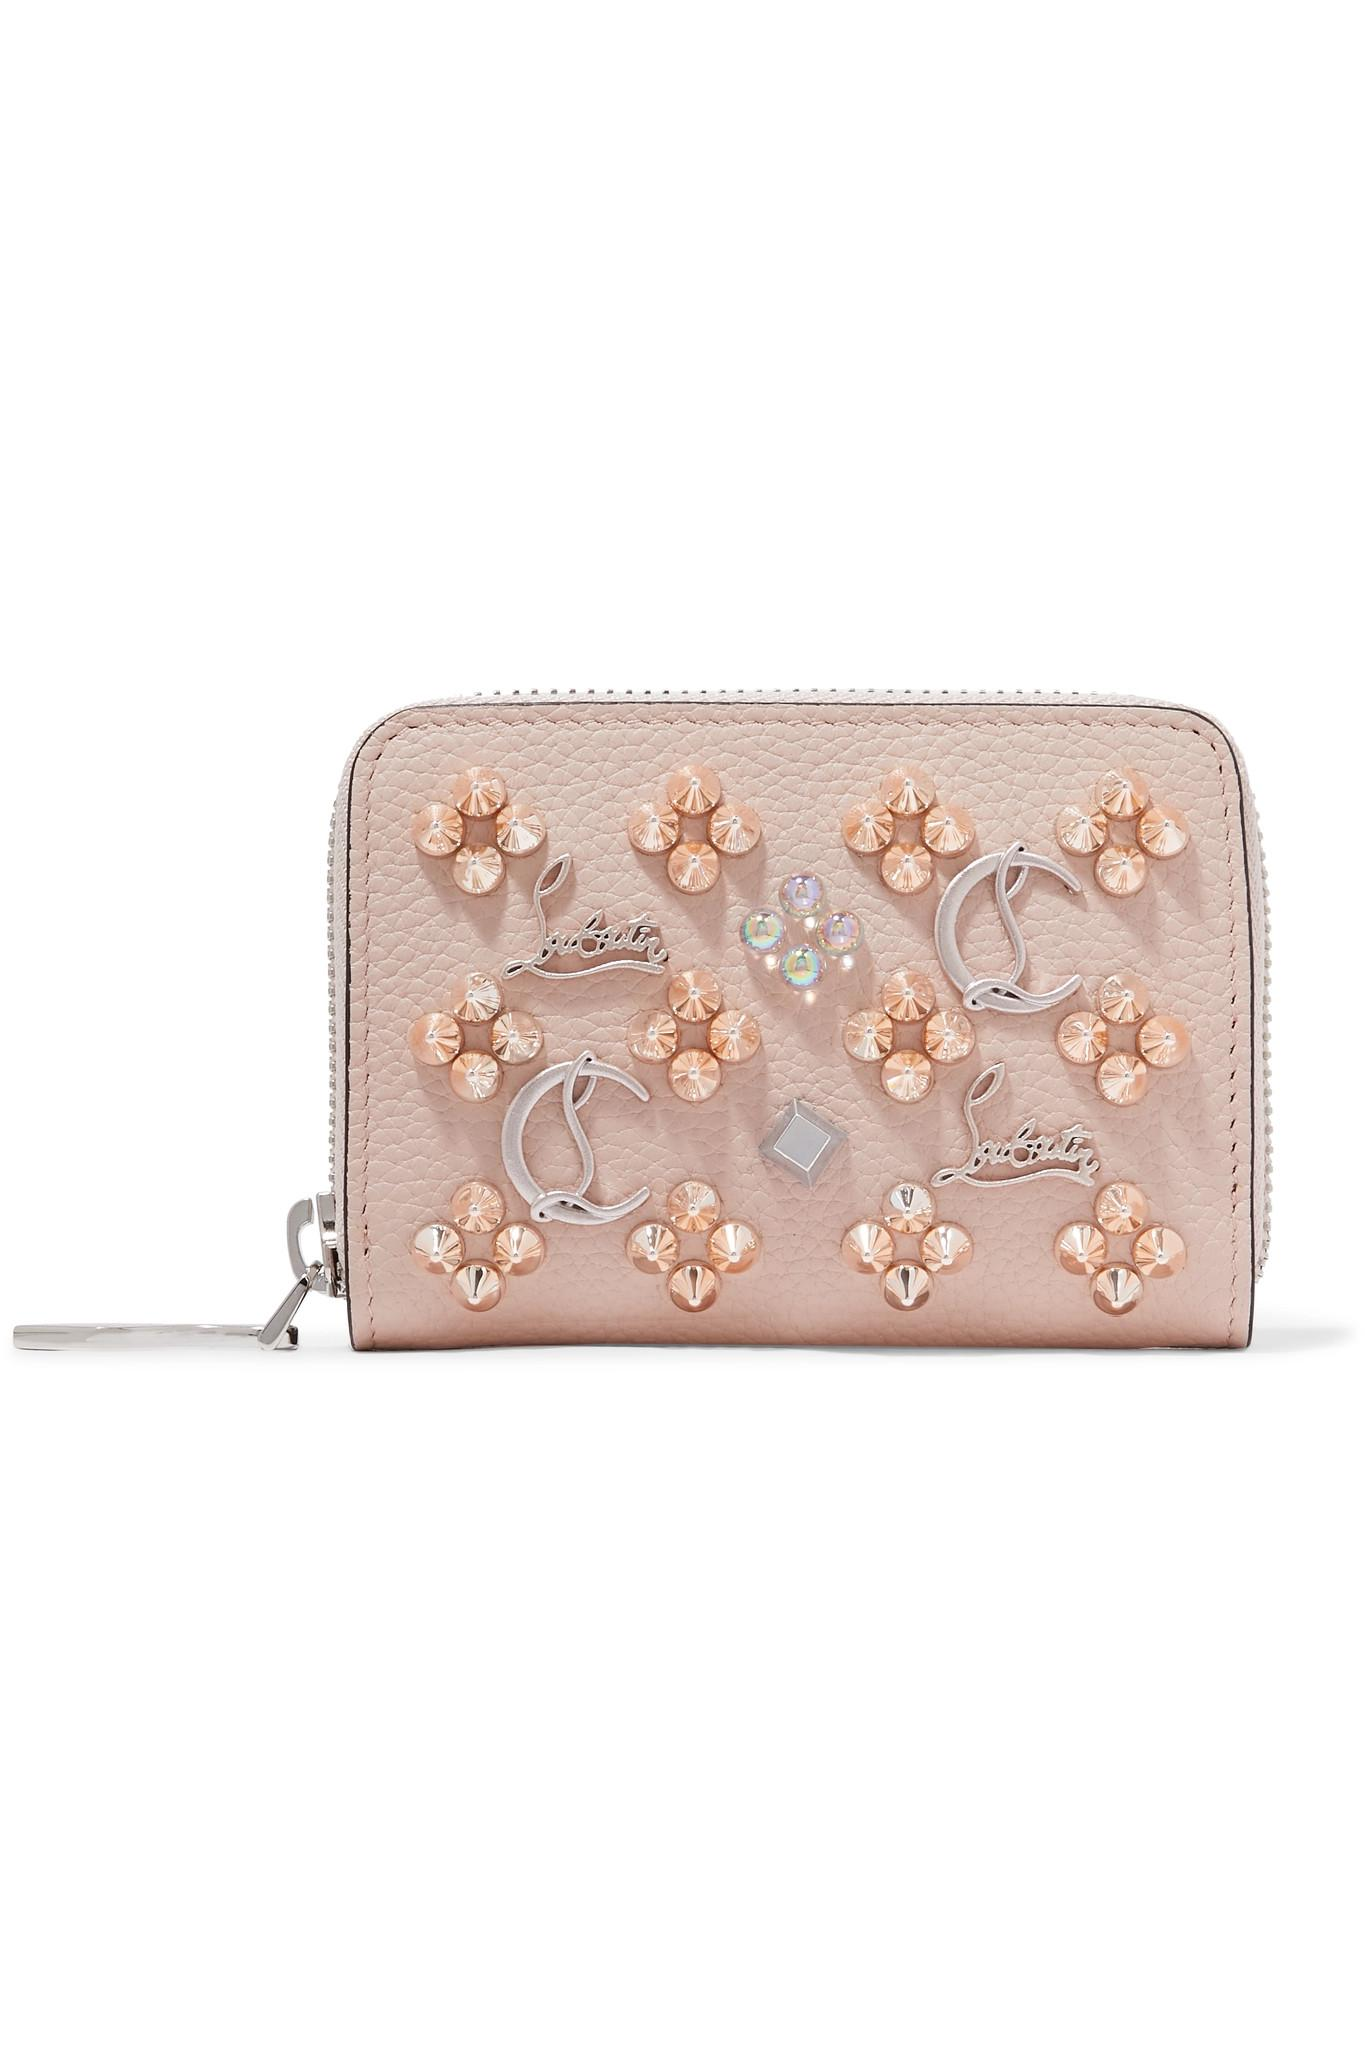 6cdf1ace75 Christian Louboutin. Women's Panettone Spiked Textured-leather Wallet